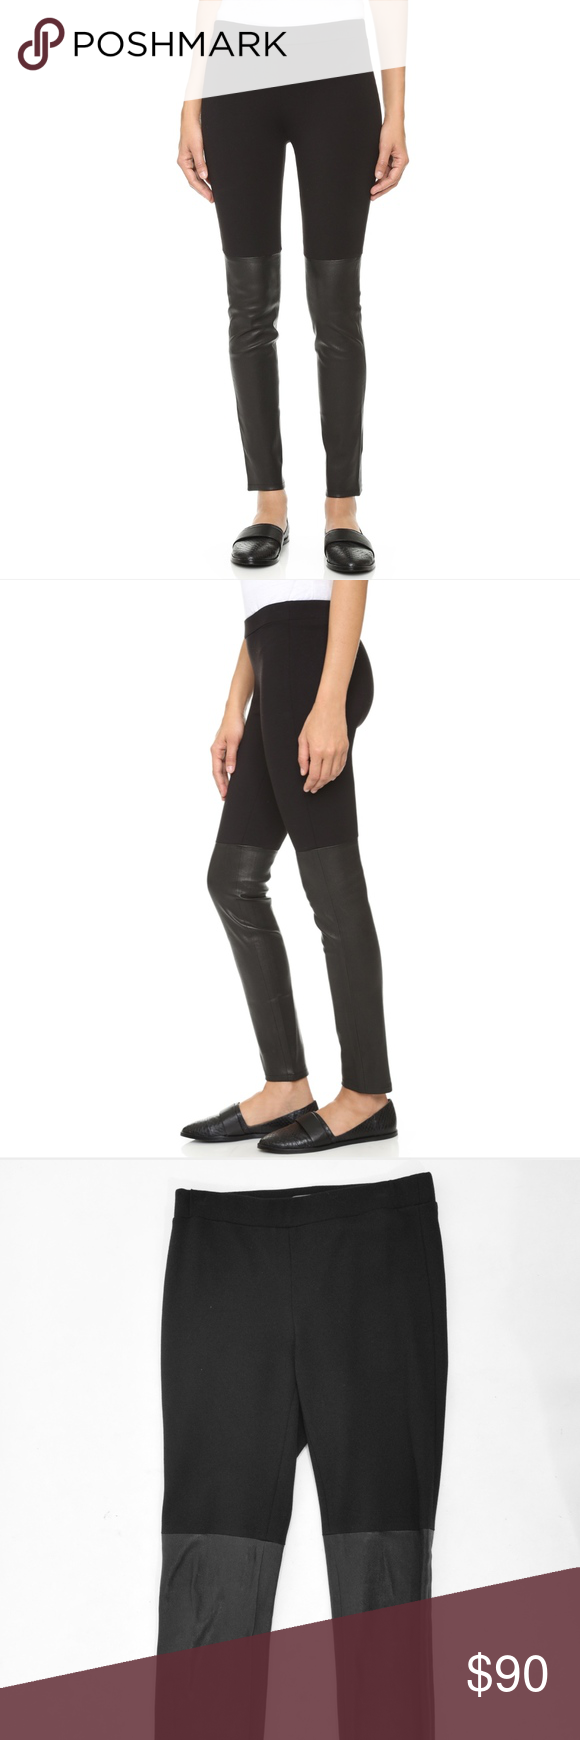 4179593d251af Vince Mixed Media Lambskin Leather Leggings Stretch knit leggings from Vince.  Black, stretch ponte knit fabric with contrast lambskin leather at the  bottom.